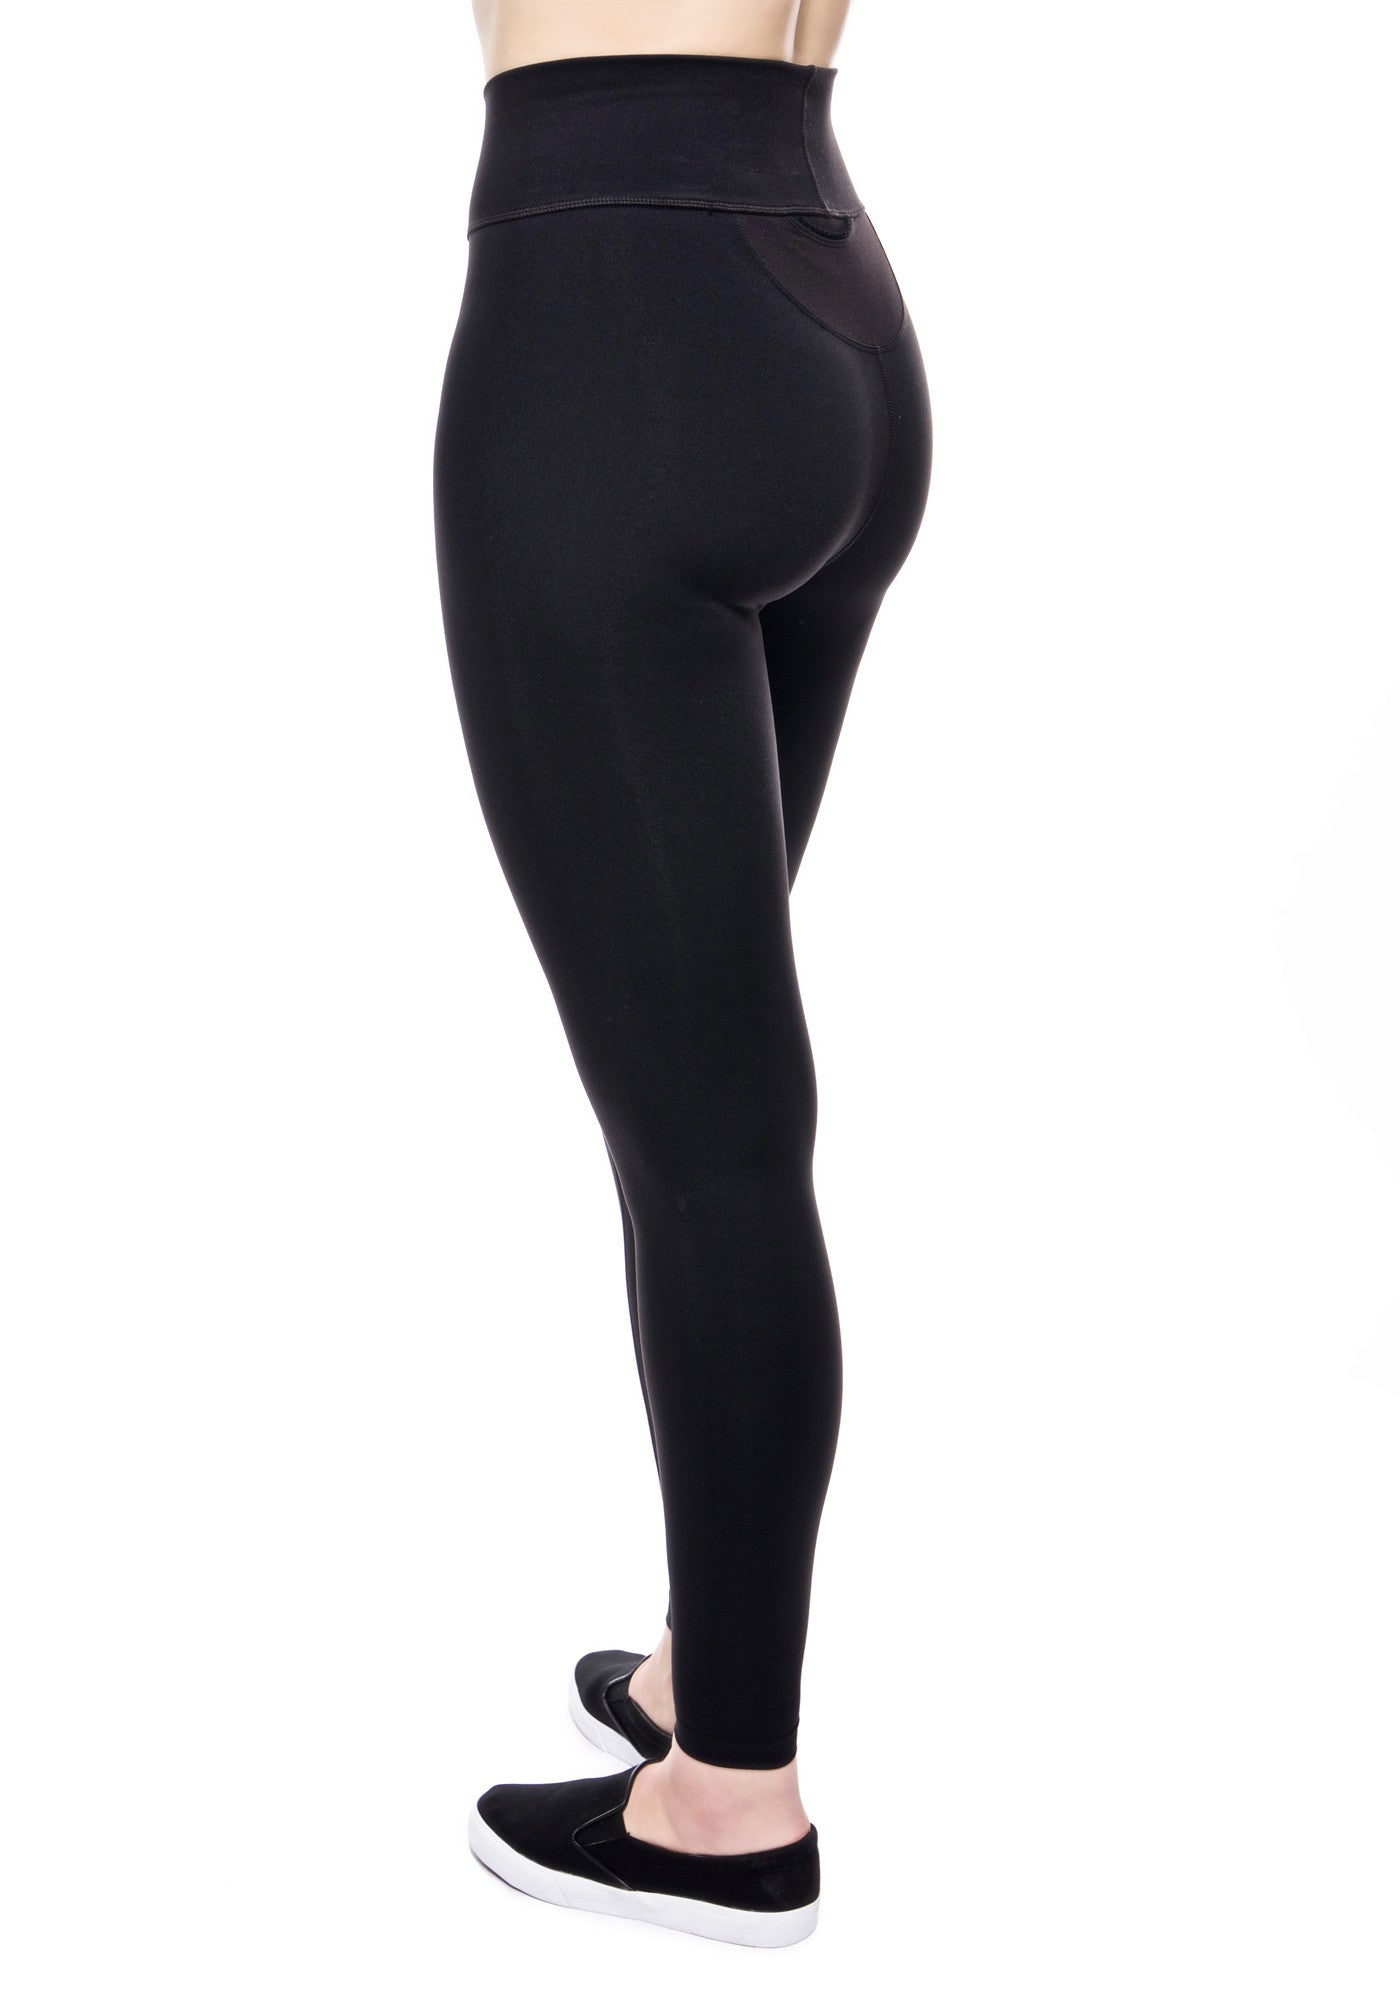 Back view of our high waisted legging in Black with hidden back pocket and foldover waistband made from premium high performance activewear fabric that wicks moisture away from your body to keep you comfortable